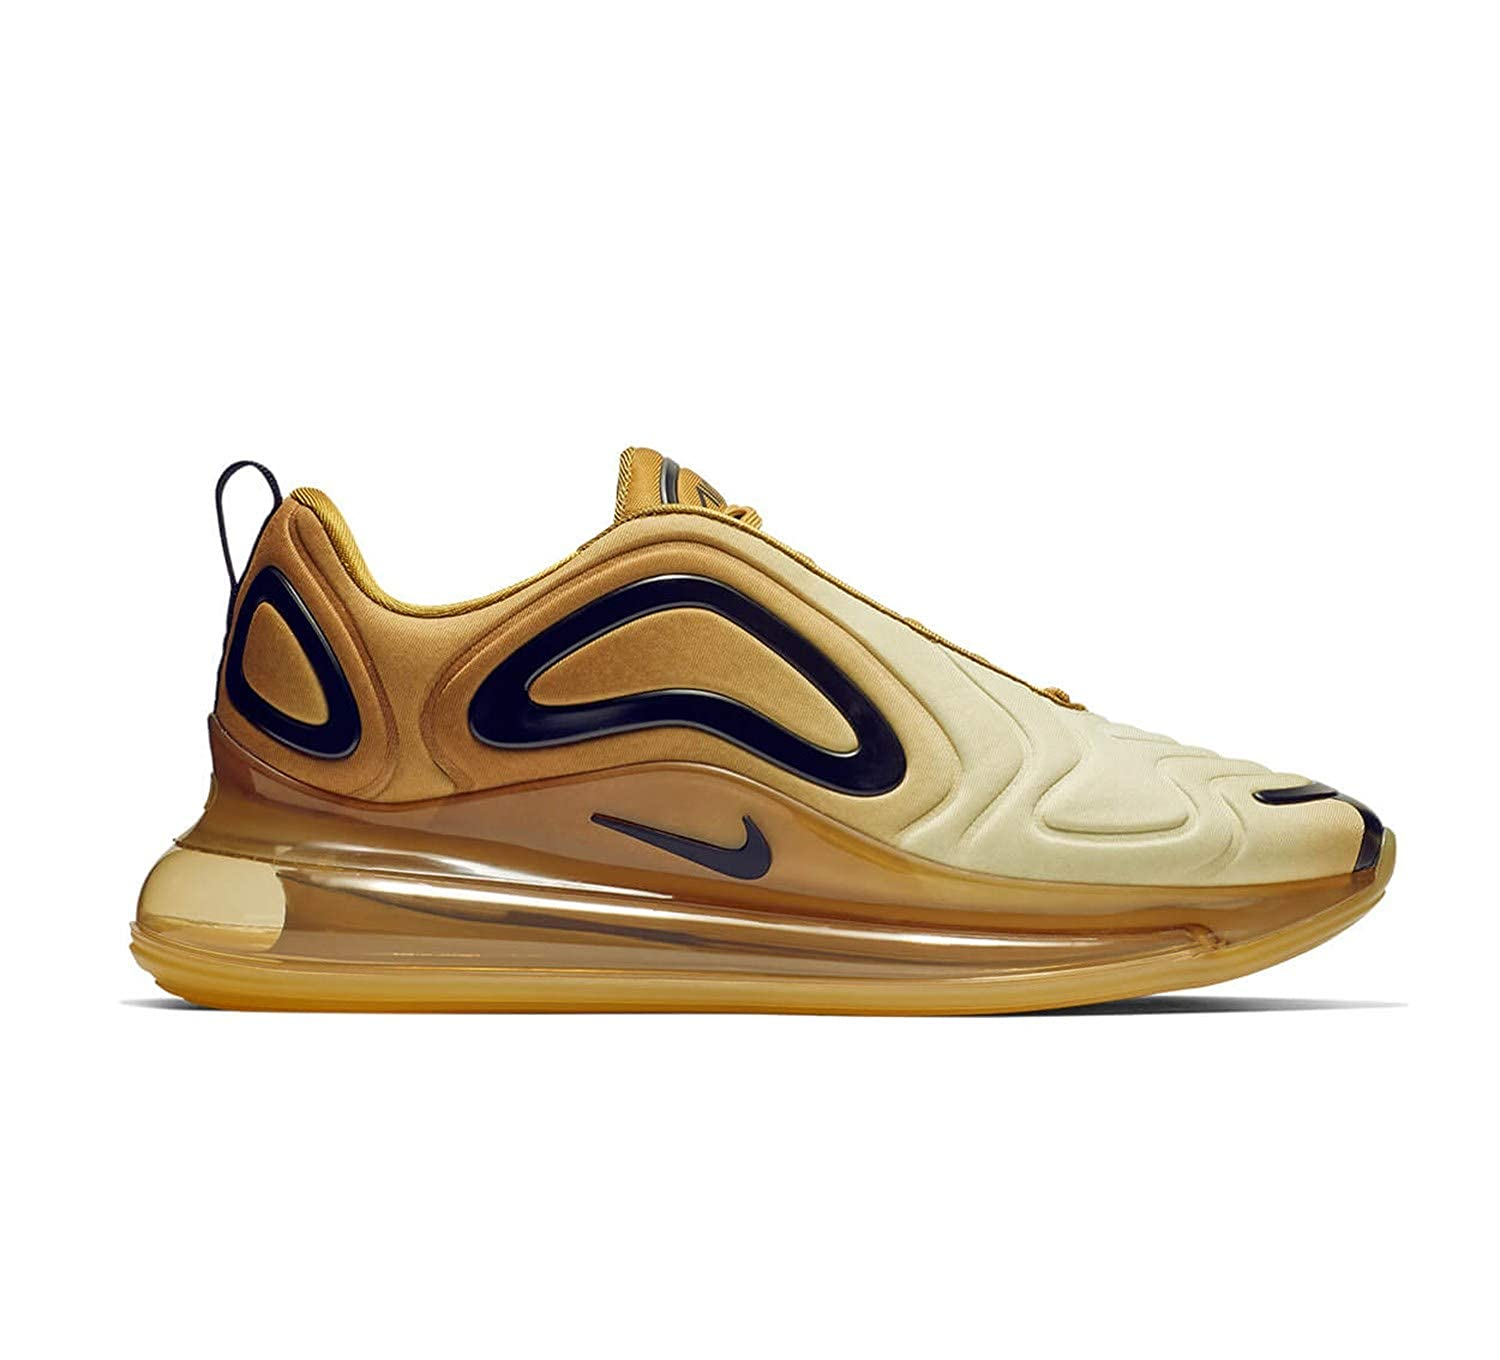 newest 5c330 bdb82 Nike Air Max 720 Mens Mens Ao2924-700 Gold Size  8 UK  Amazon.co.uk  Shoes    Bags